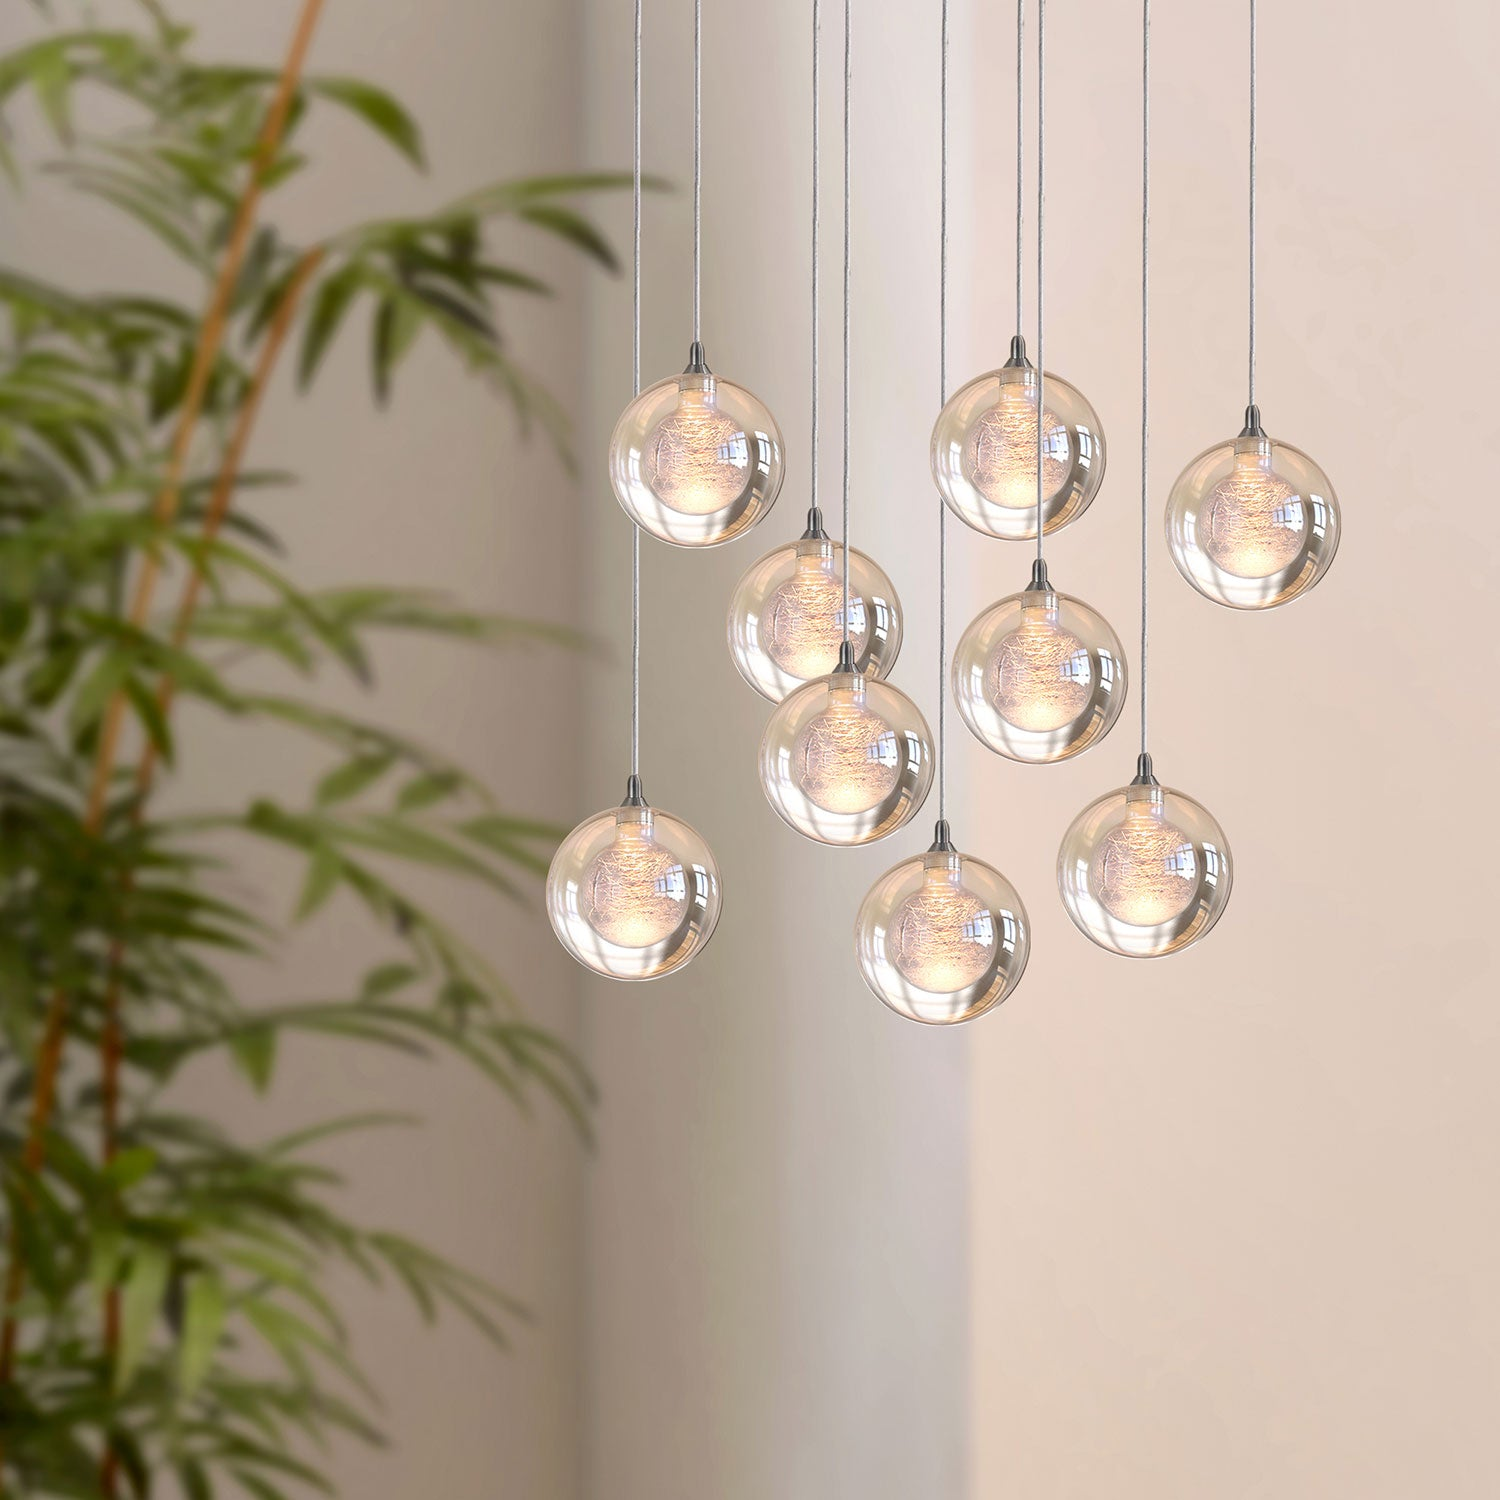 Aura 9-light LED mini pendant